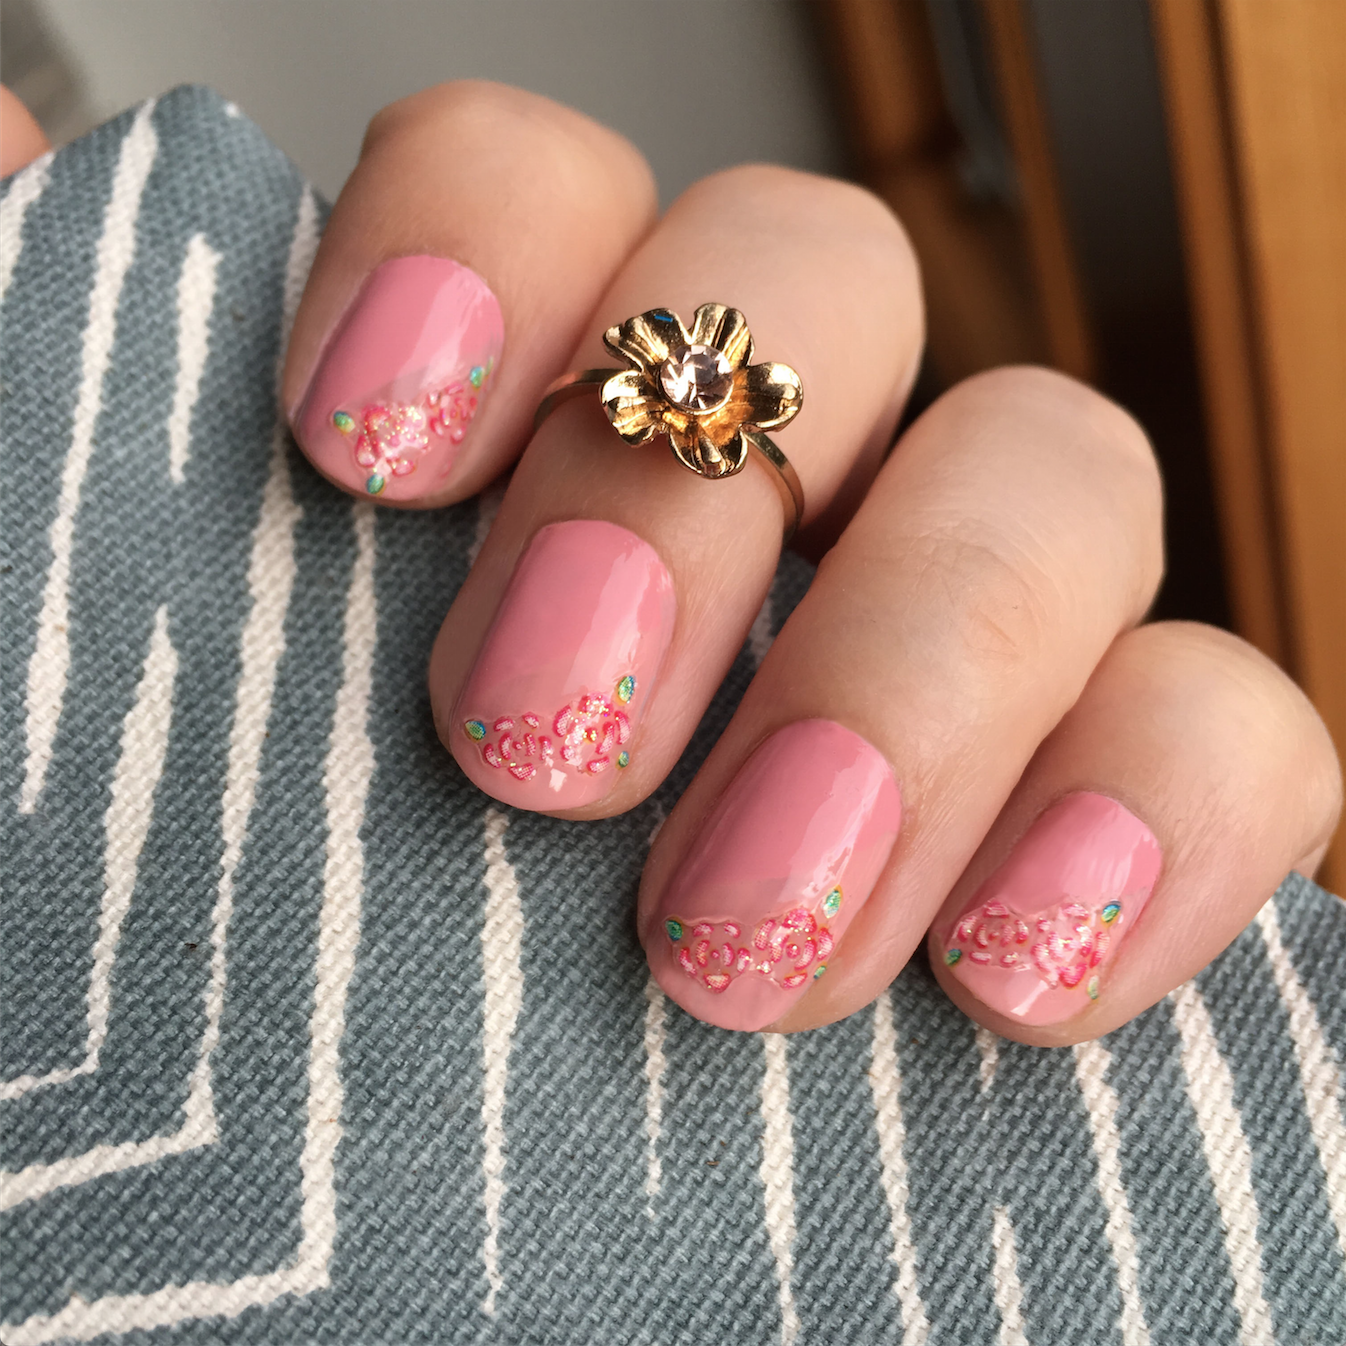 Nails Of The Day: Pretty In Pink With 100% Pure : Vegan